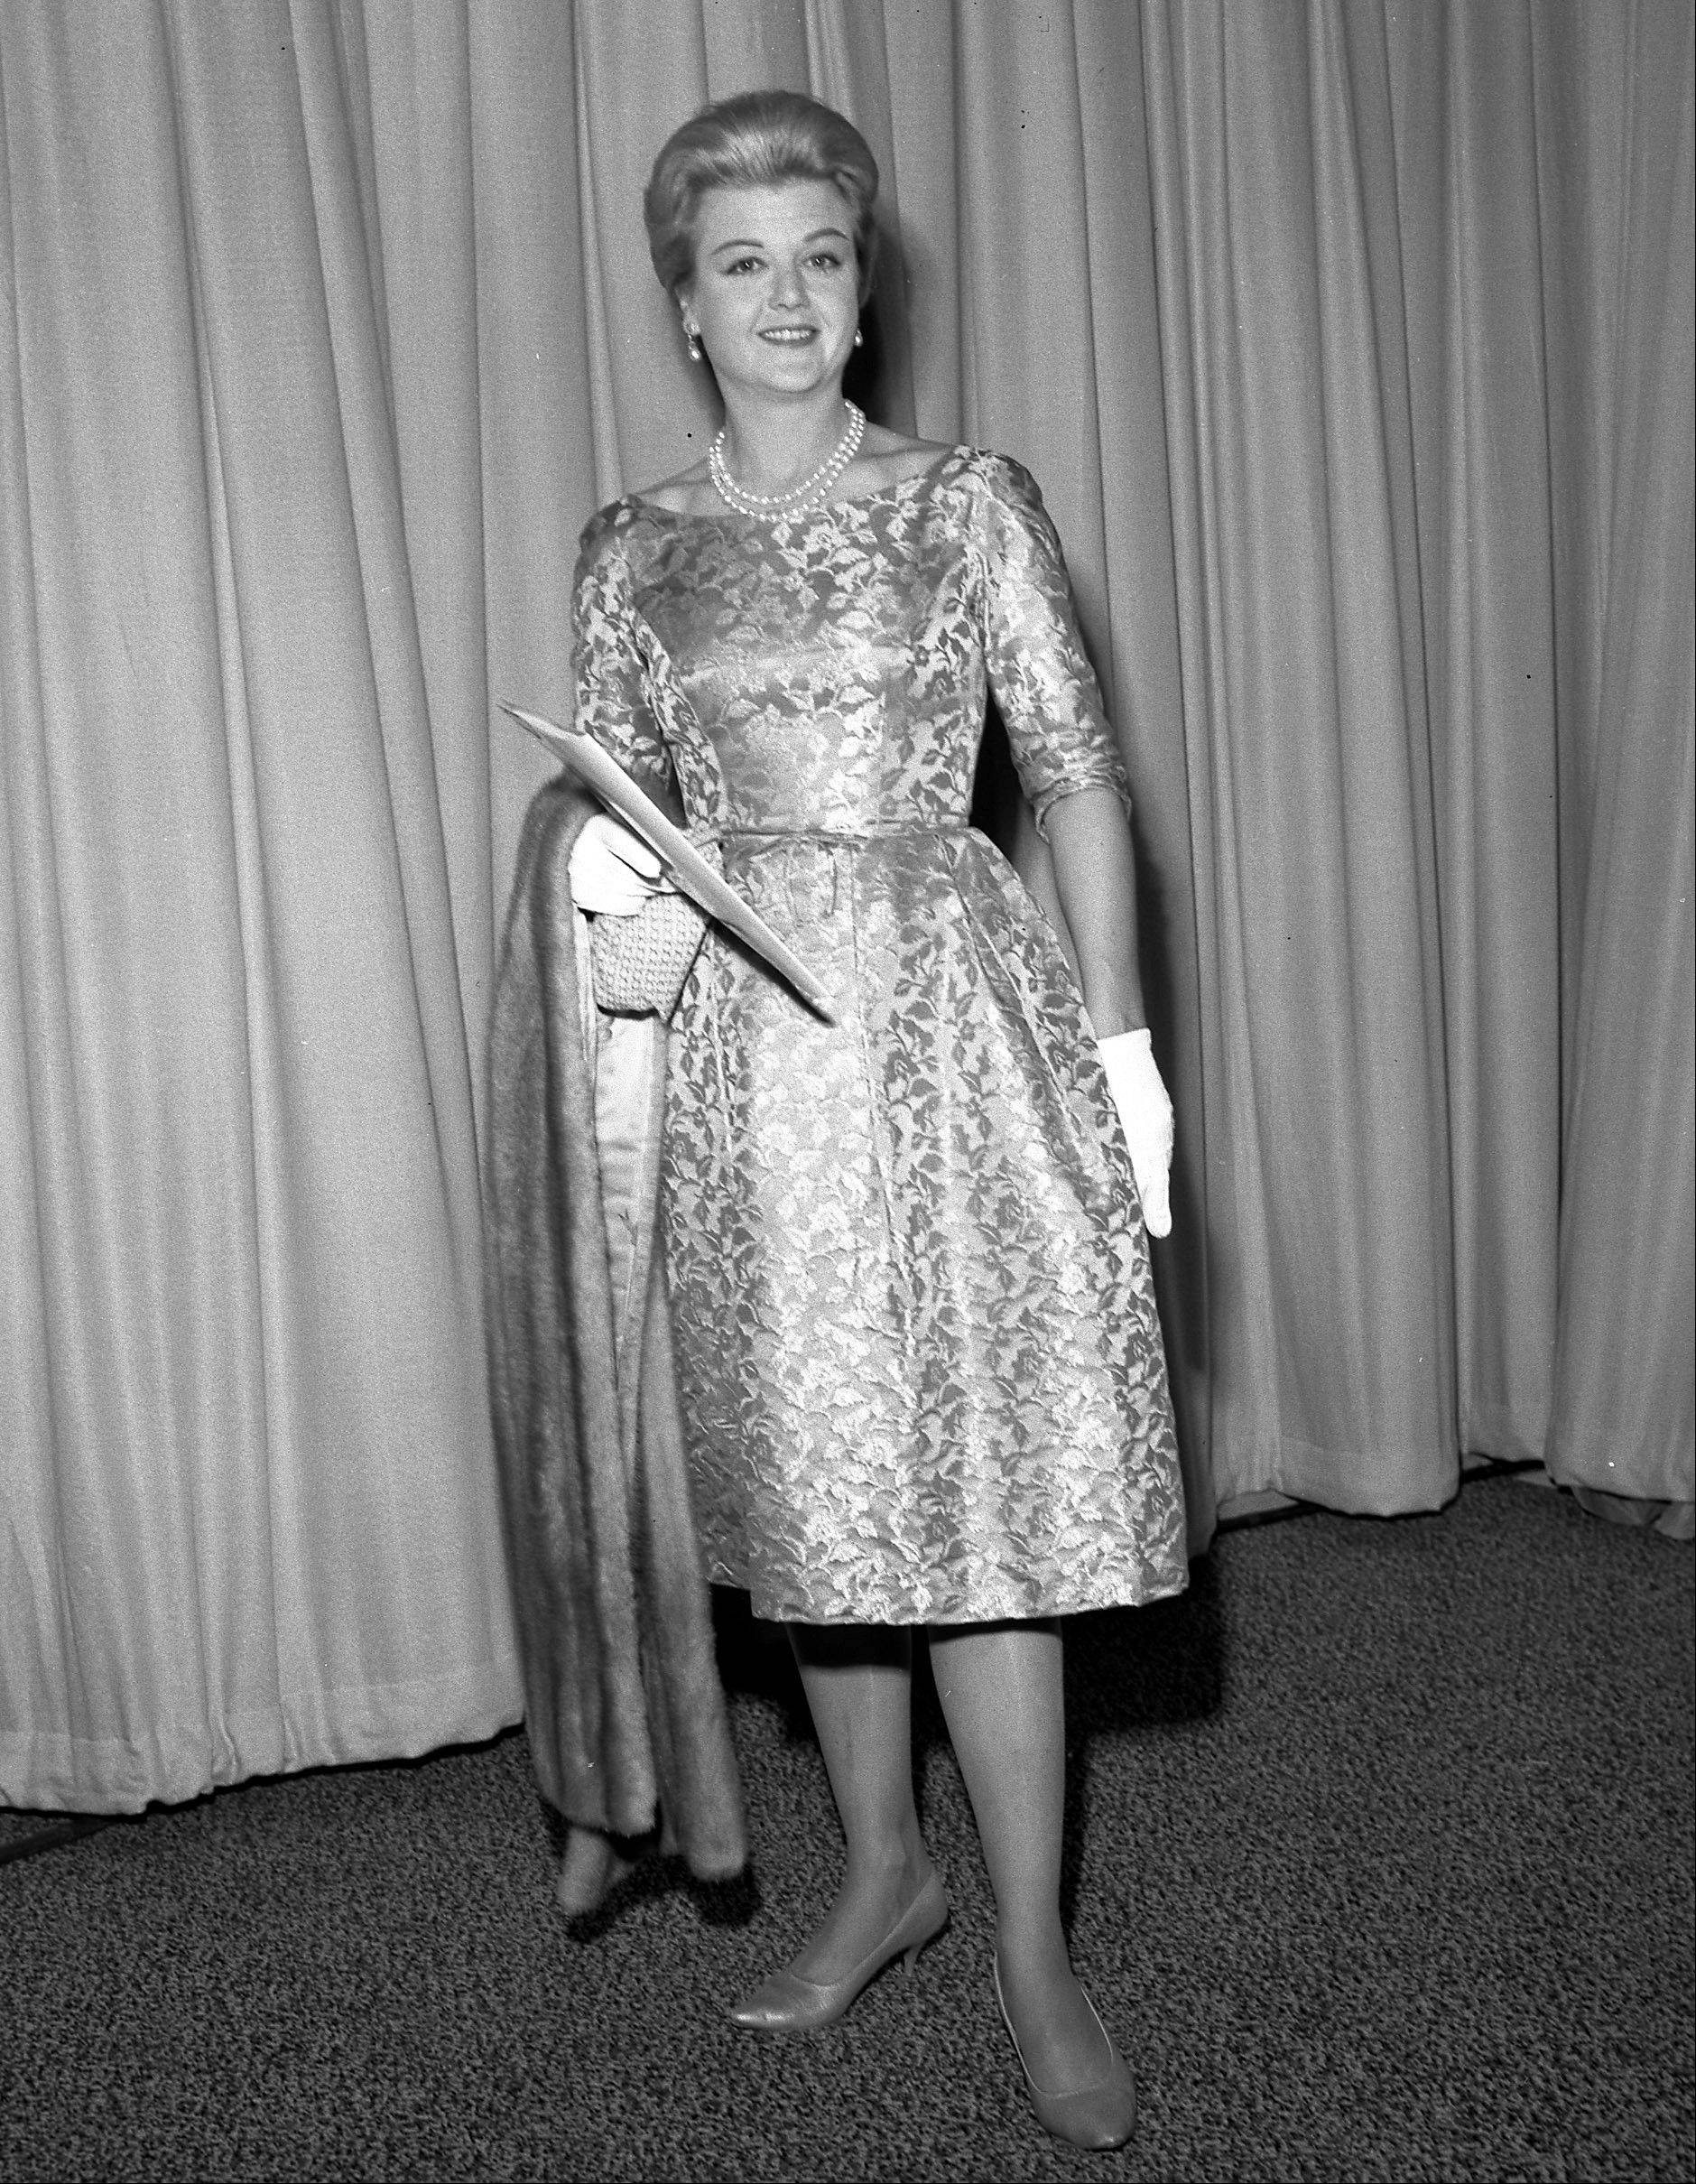 This 1961 photo released by the Academy of Motion Picture Arts and Sciences shows actress Angela Lansbury at the 34th Academy Awards ceremony, in Los Angeles. The Board of Governors of the Academy of Motion Picture Arts and Sciences will present Honorary Awards to Lansbury, Steve Martin and Piero Tosi, and the Jean Hersholt Humanitarian Award to Angelina Jolie. All four awards will be presented at the Academy's 5th Annual Governors Awards on Saturday, November 16, 2013, at the Ray Dolby Ballroom at the Hollywood & Highland Center in the Hollywood section of Los Angeles.